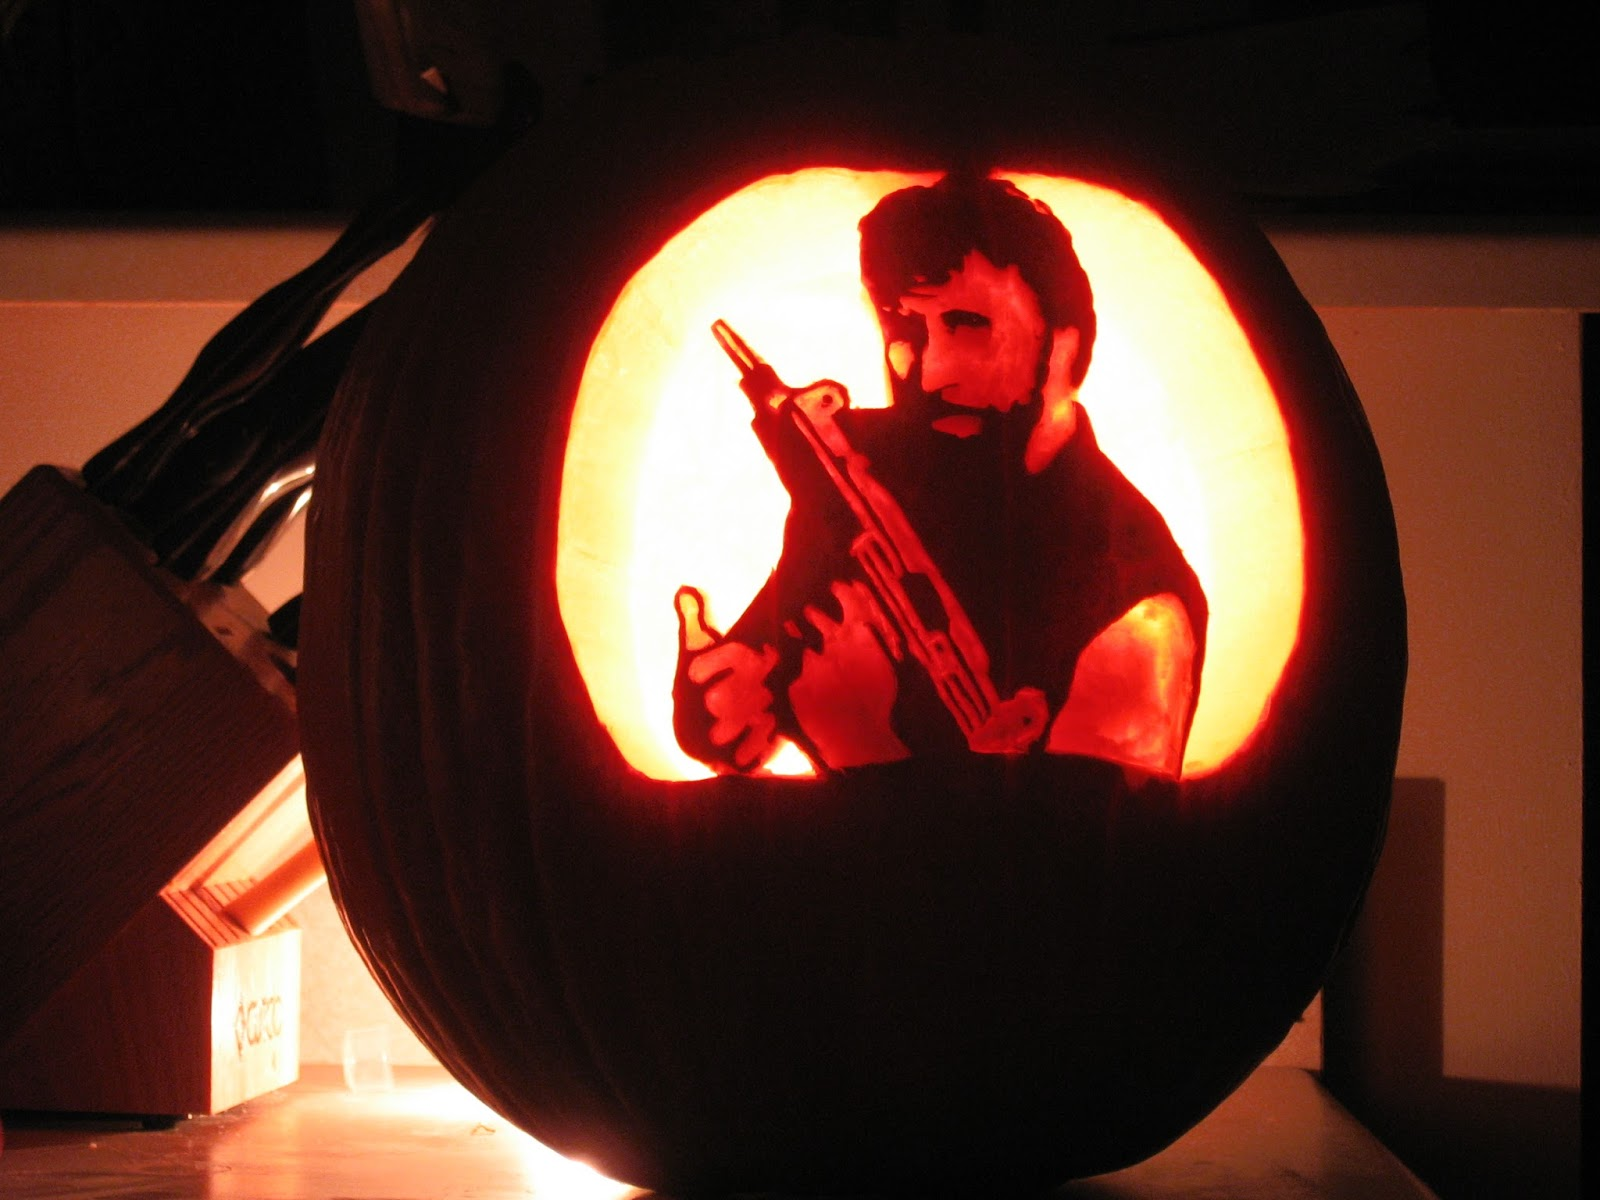 Pumpkin Carving Ideas for Halloween 2017: Some of the Funniest ...